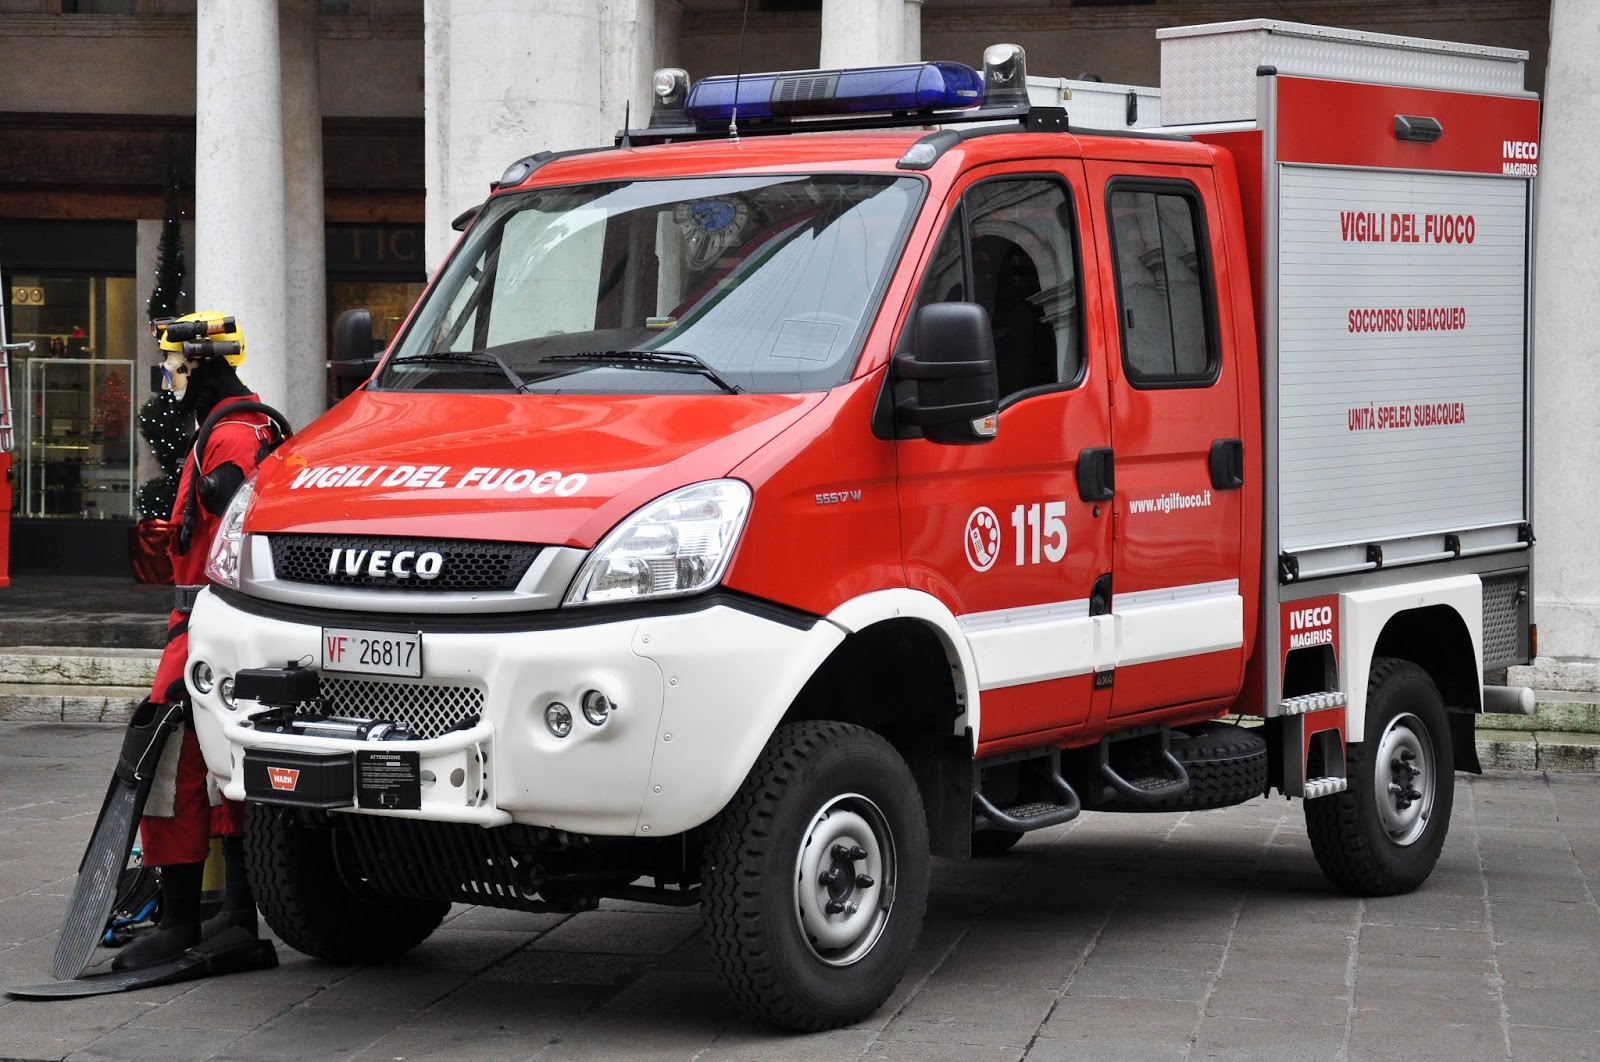 A fire engine for underwater rescue missions, Saint Barbara celebration, Vicenza, Veneto, Italy